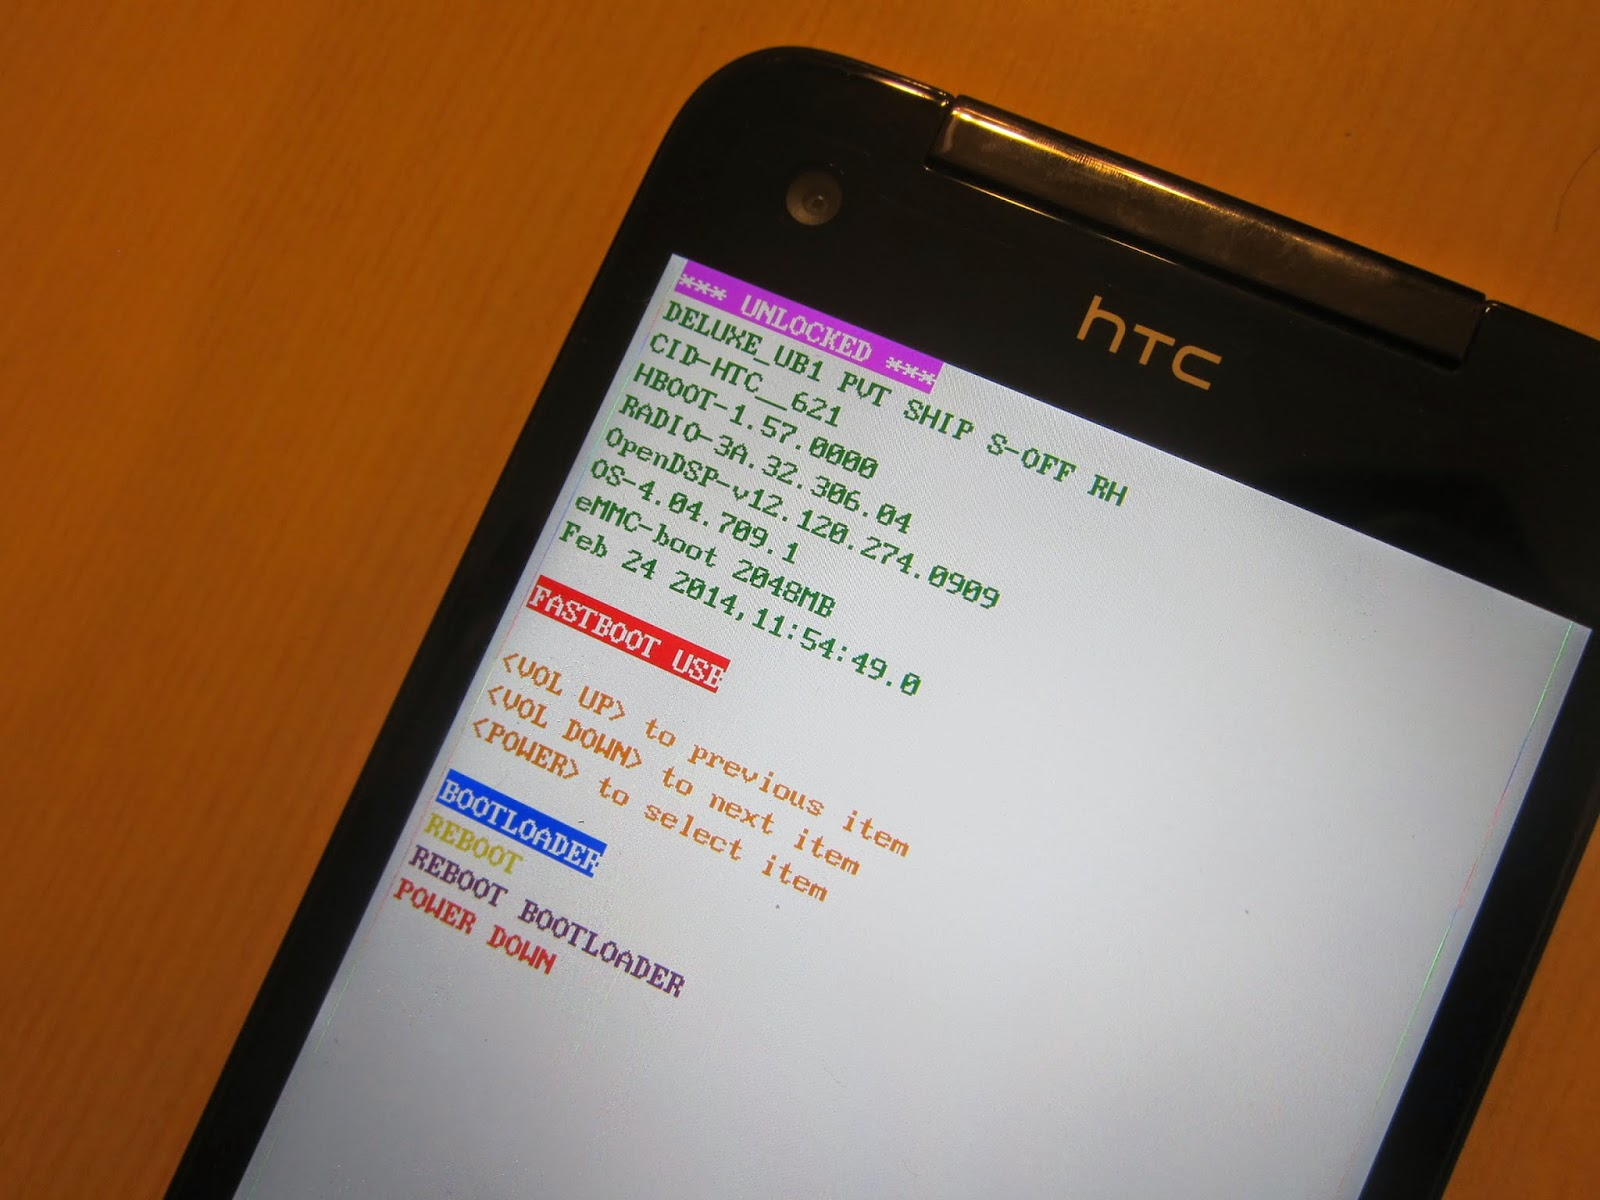 IMG 2325 - 【圖文教學】HTC Butterfly 4.3/4.4 解鎖+ROOT